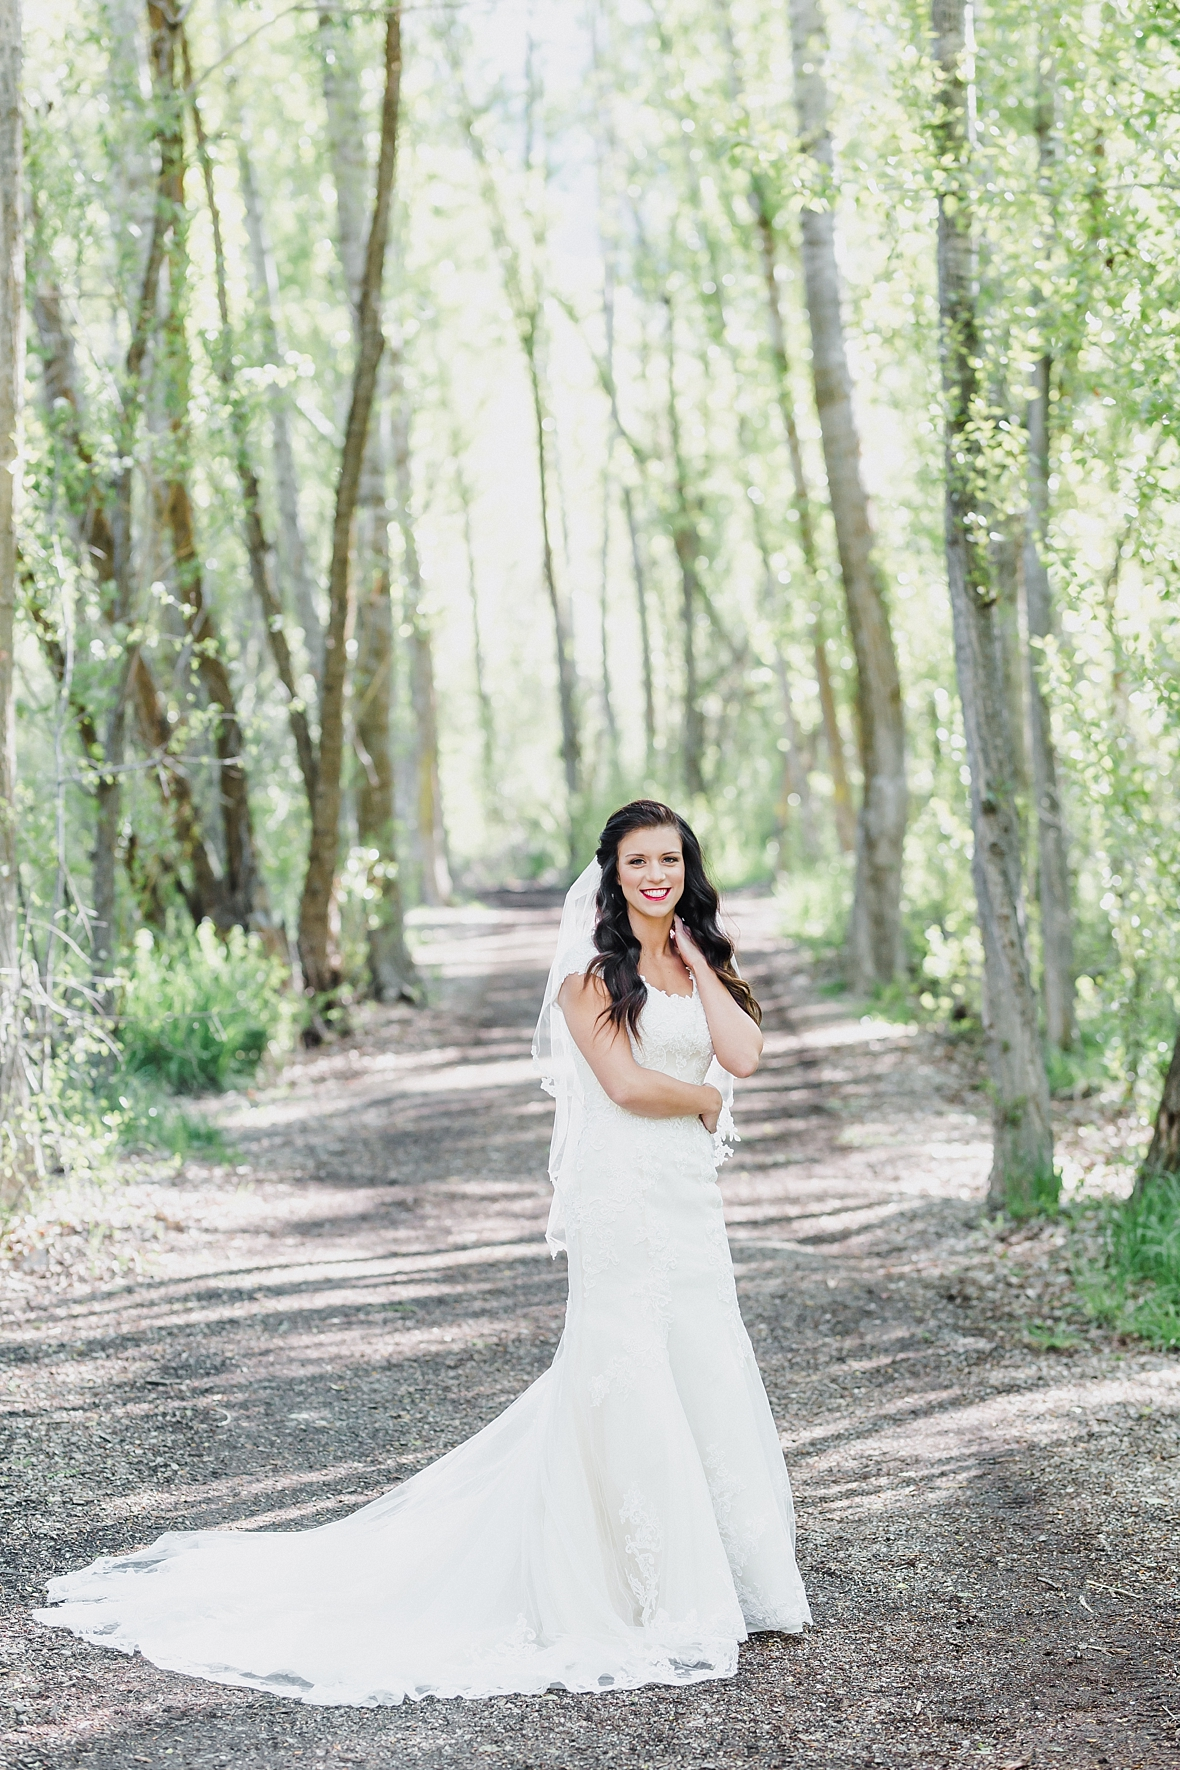 Kaysville Wedding Photographer_0001.jpg